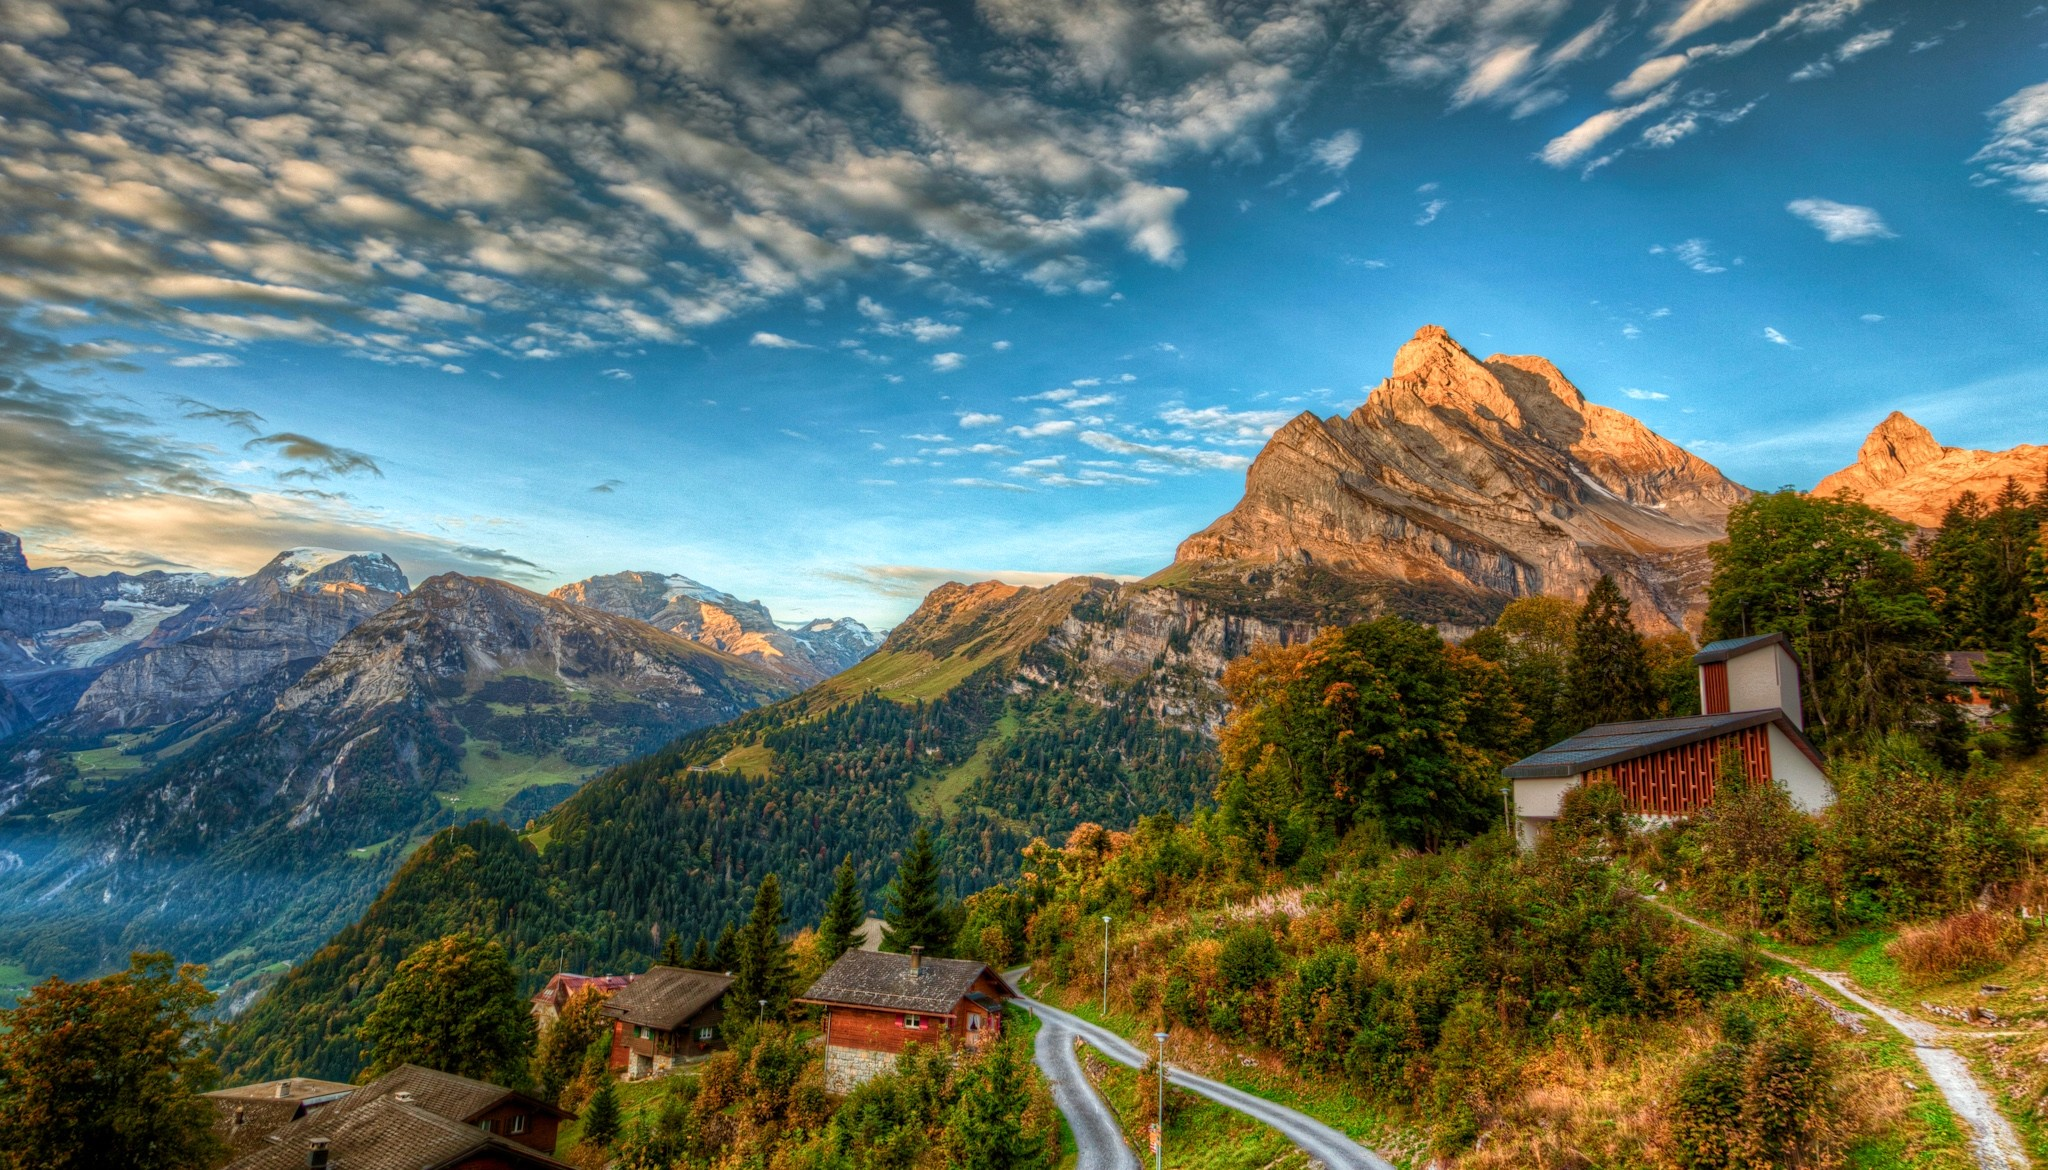 Village in the mountains hd wallpaper background image - Swiss alps wallpaper ...